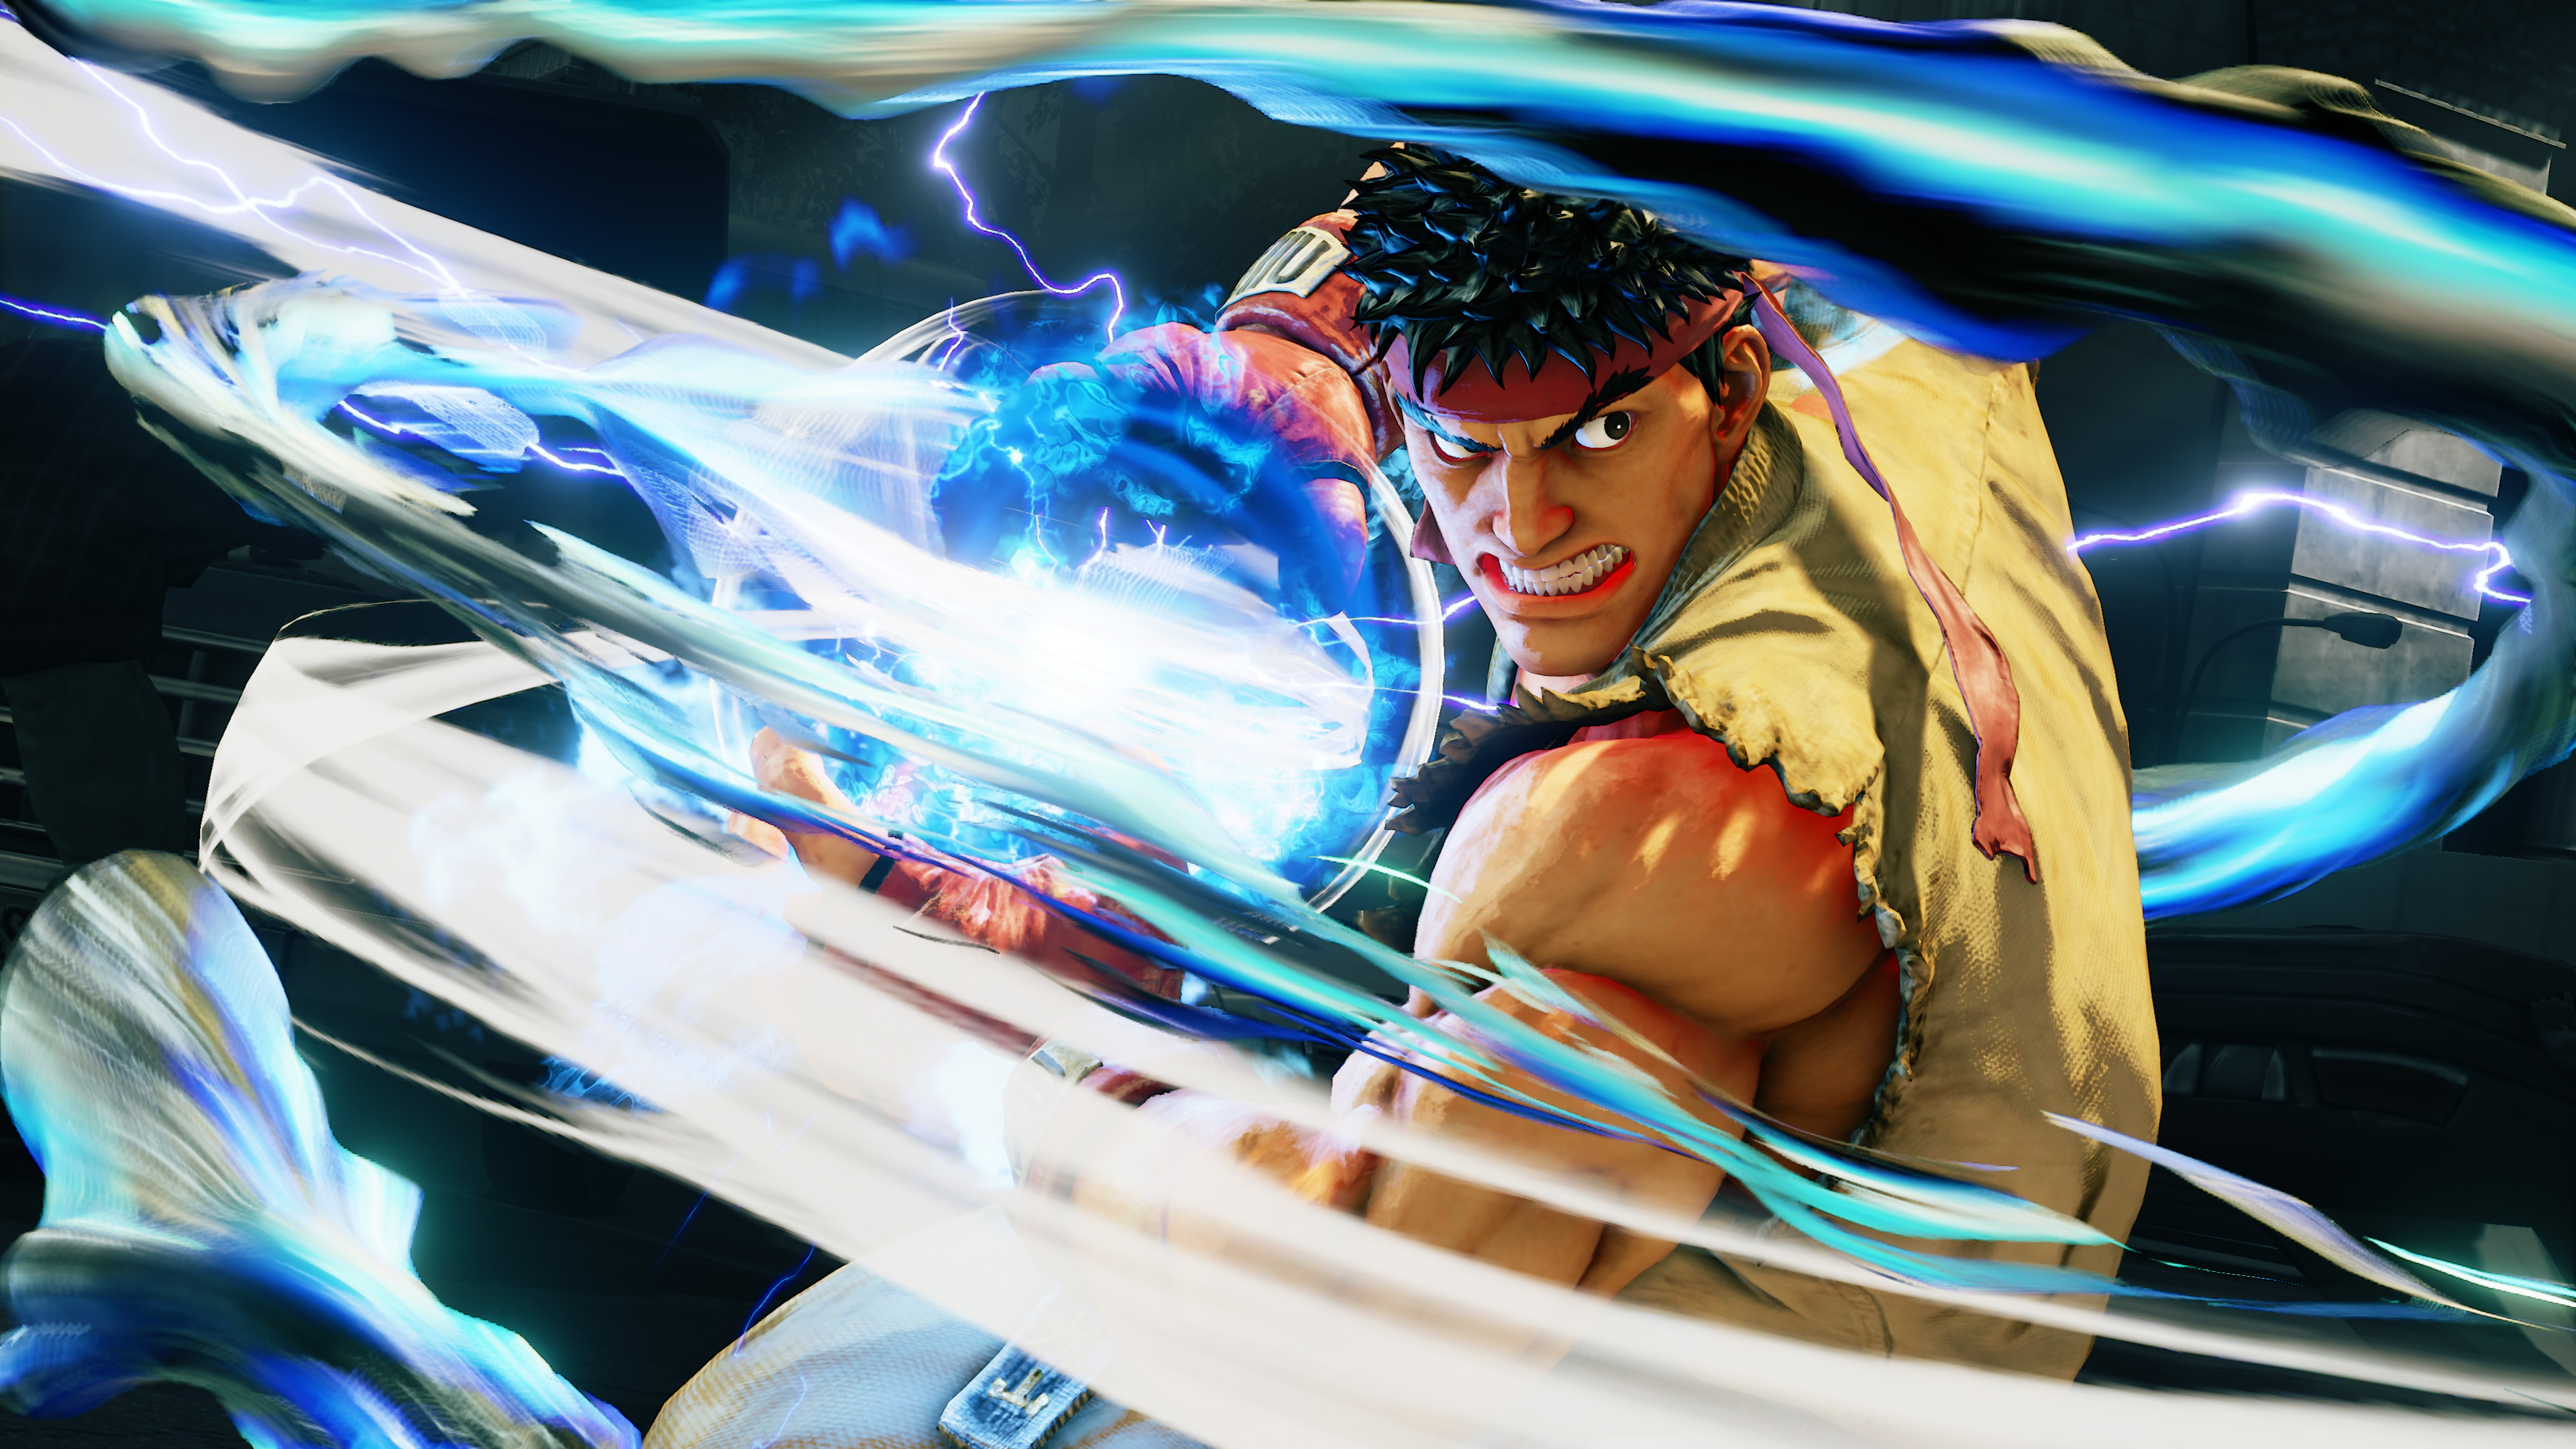 2560x1440 Ryu Street Fighter V 4k 1440p Resolution Hd 4k Wallpapers Images Backgrounds Photos And Pictures